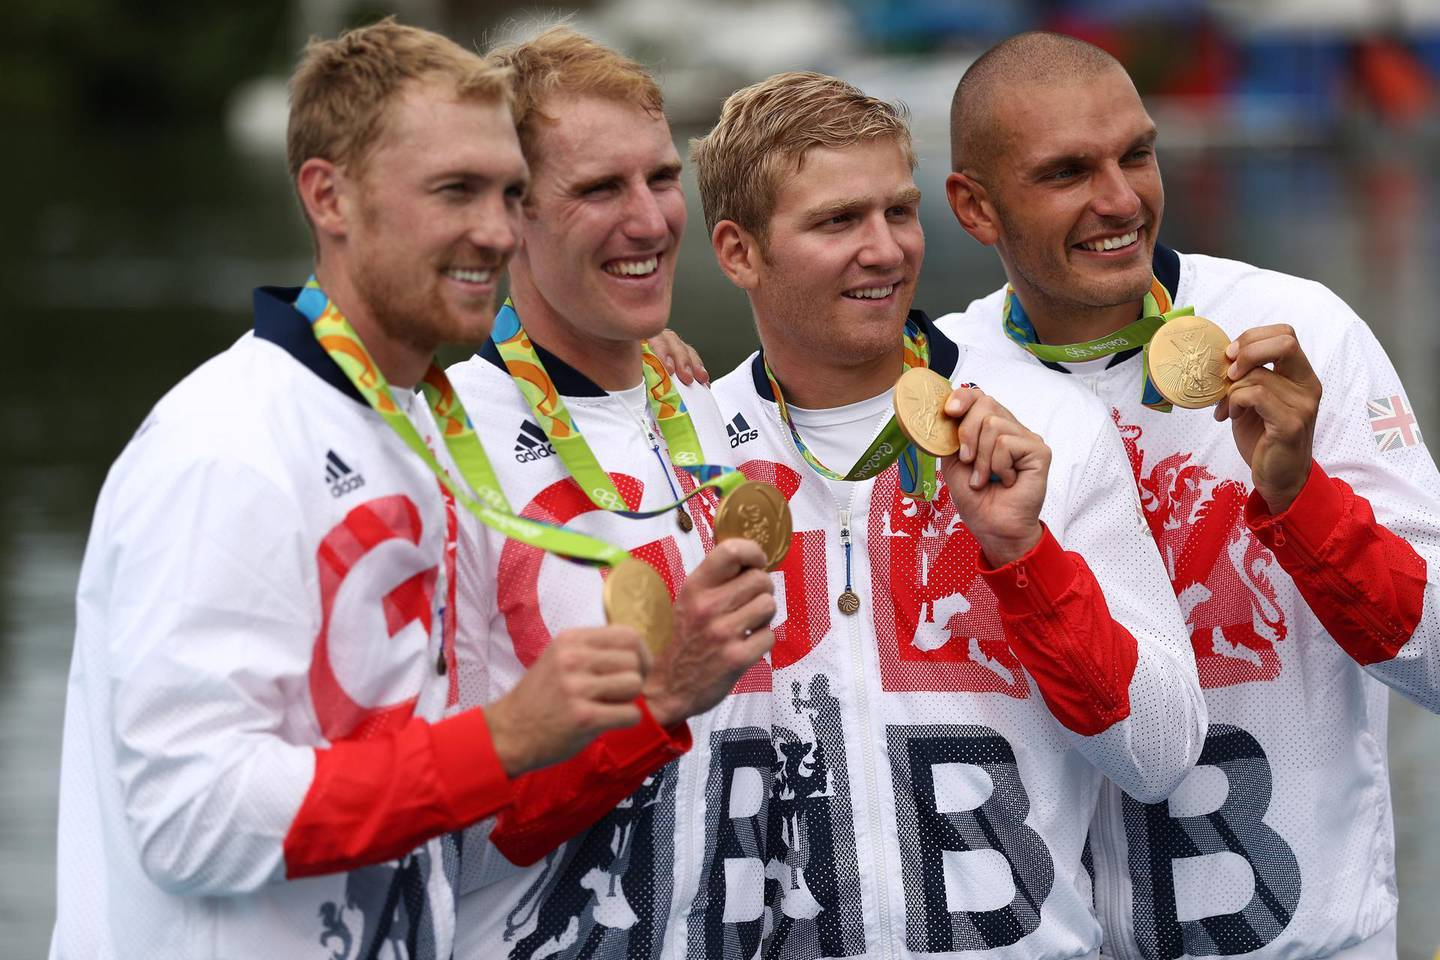 RIO DE JANEIRO, BRAZIL - AUGUST 12:  Gold medalists Alex Gregory, Mohamed Sbihi, George Nash and Constantine Louloudis of Great Britain pose for photographs on the podium at the medal ceremony for the Men's Four on Day 7 of the Rio 2016 Olympic Games at Lagoa Stadium on August 12, 2016 in Rio de Janeiro, Brazil.  (Photo by Patrick Smith/Getty Images)